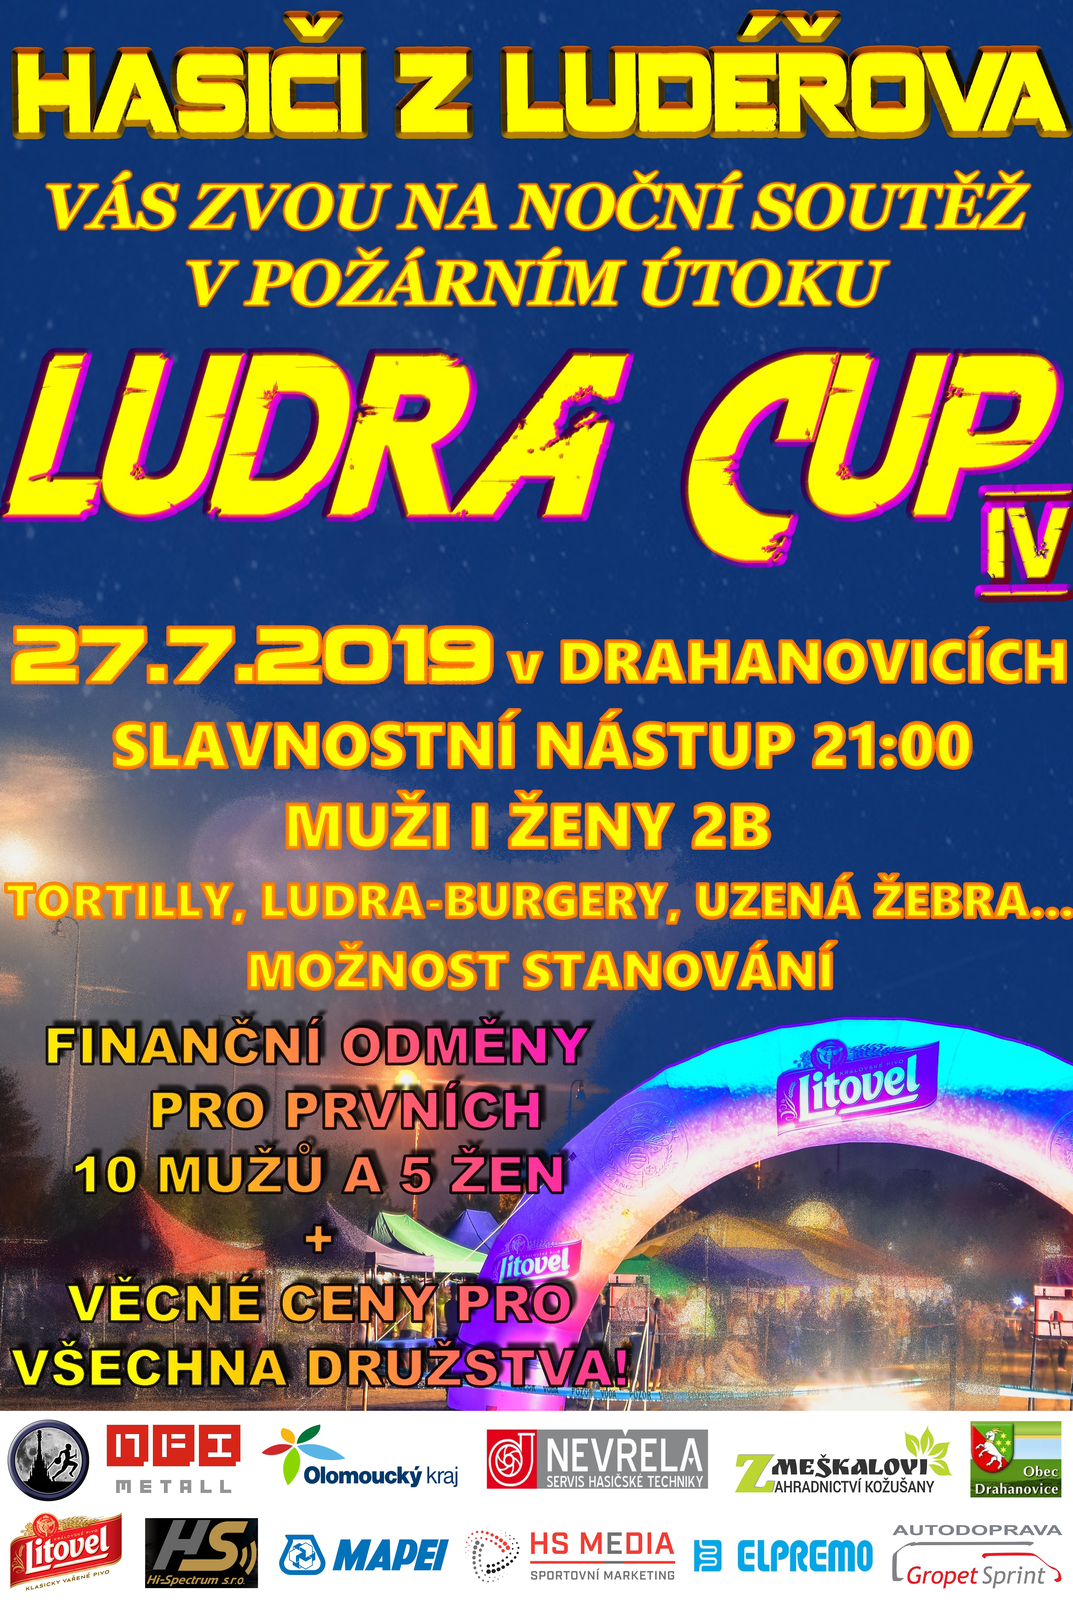 plakat Ludra cup 2019.png